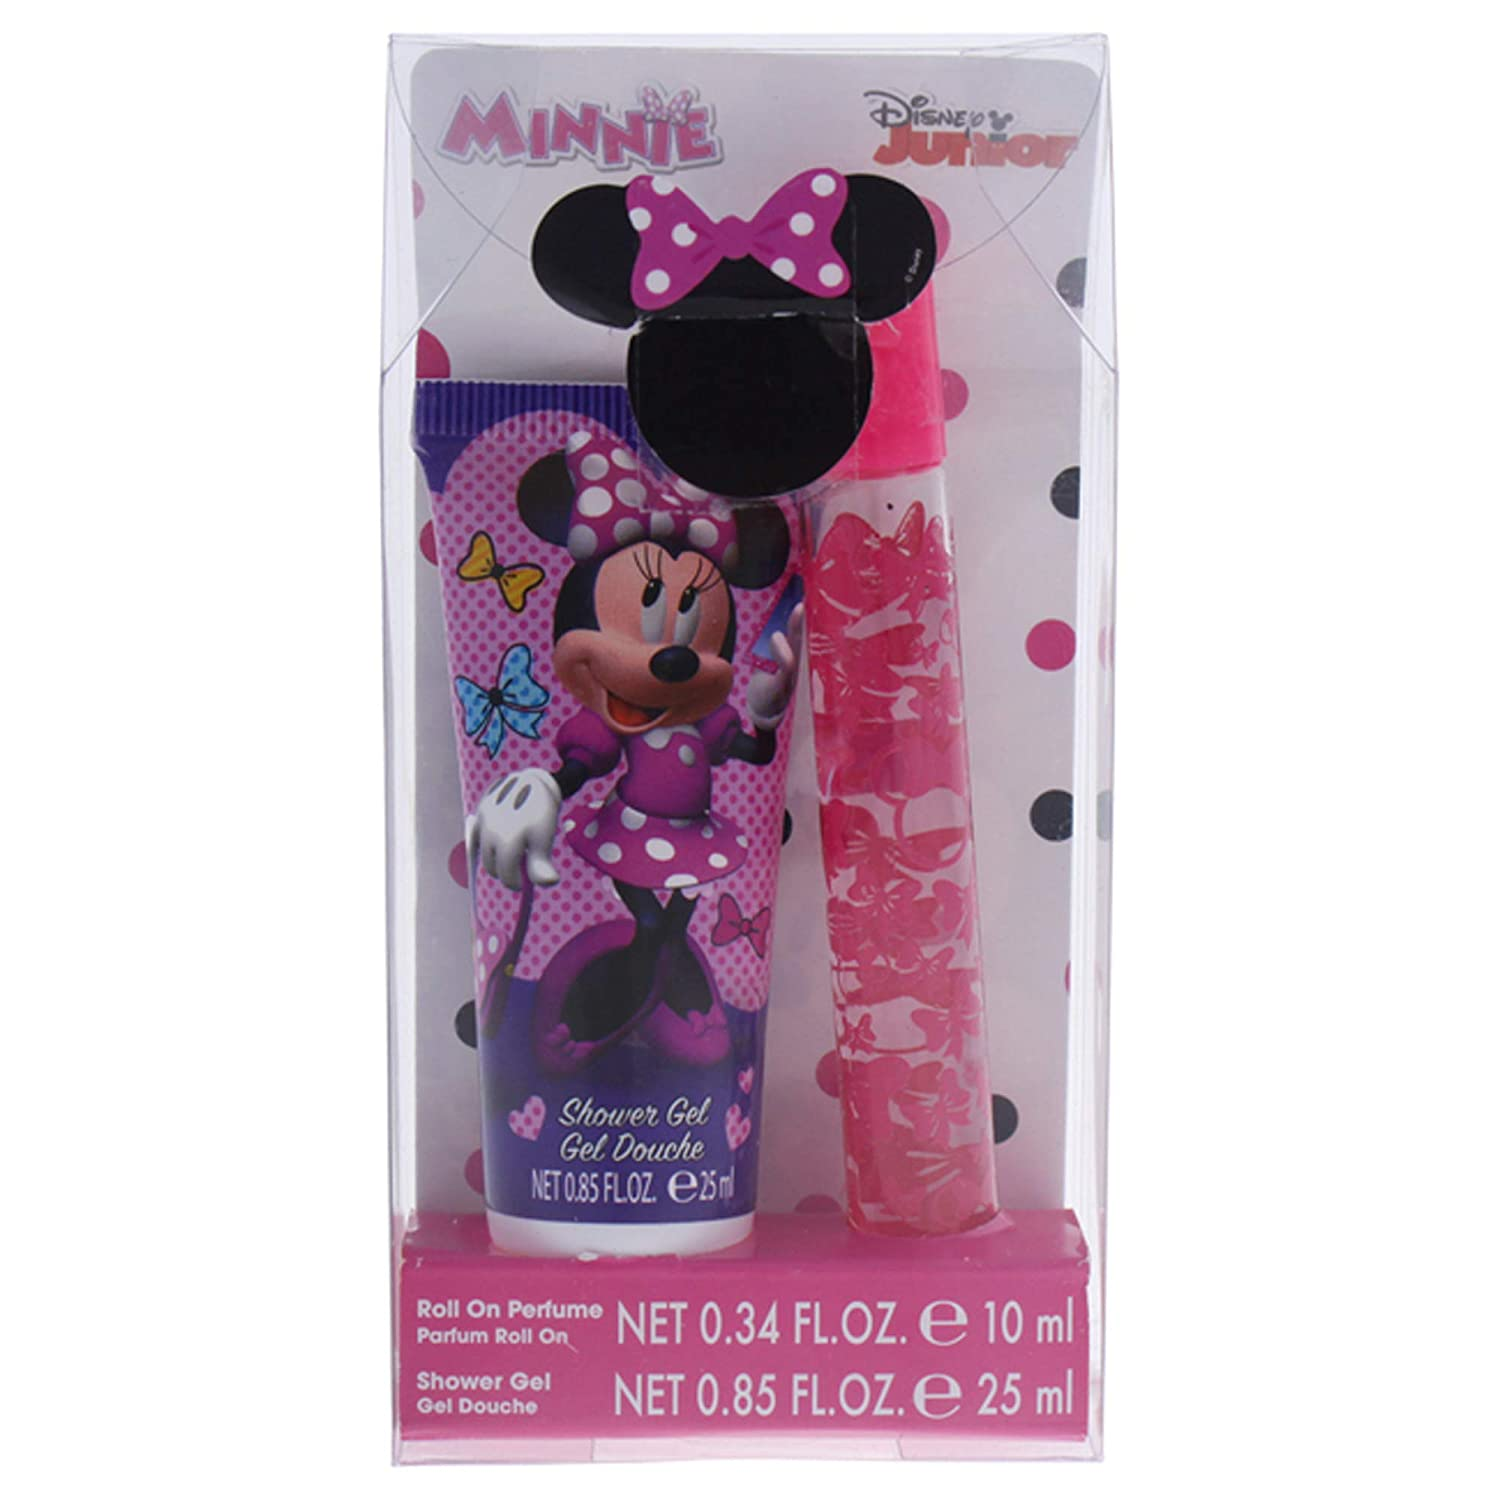 DKNY 2 Piece Gift Set for Kids, Minnie Mouse, 2 Count